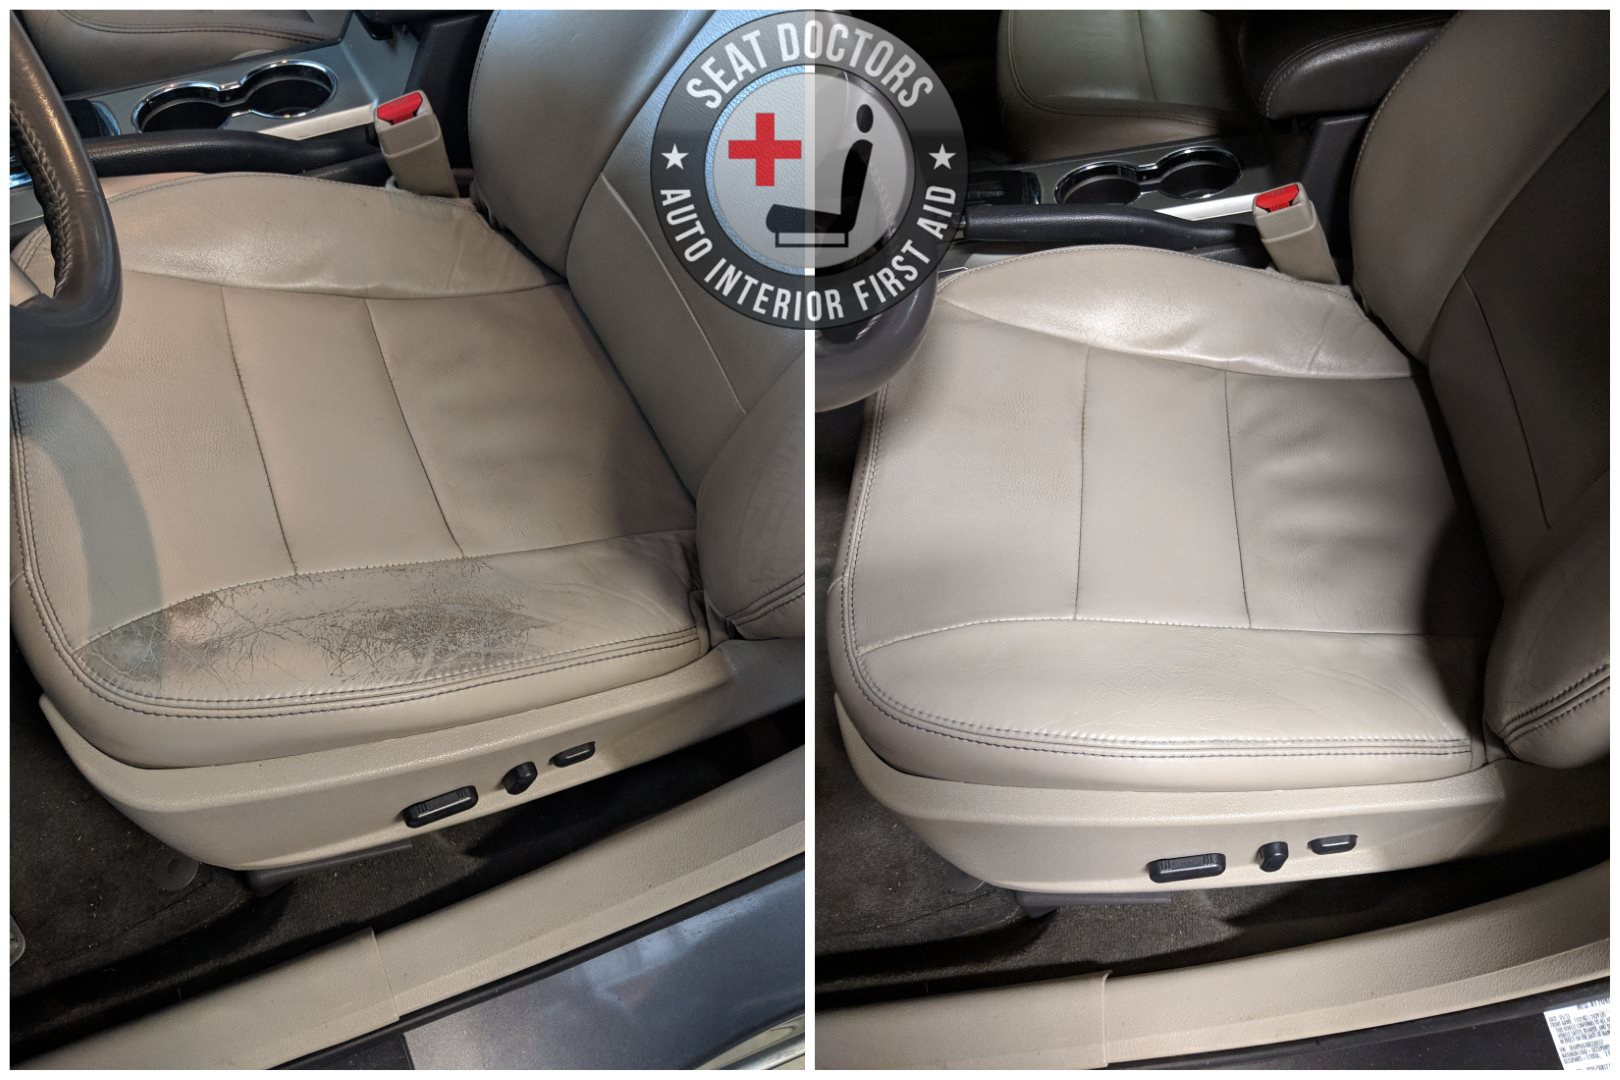 """Thanks, results turned out better than expected"" — Mike  Thanks for the before and after pictures, Mike! Looks great!"